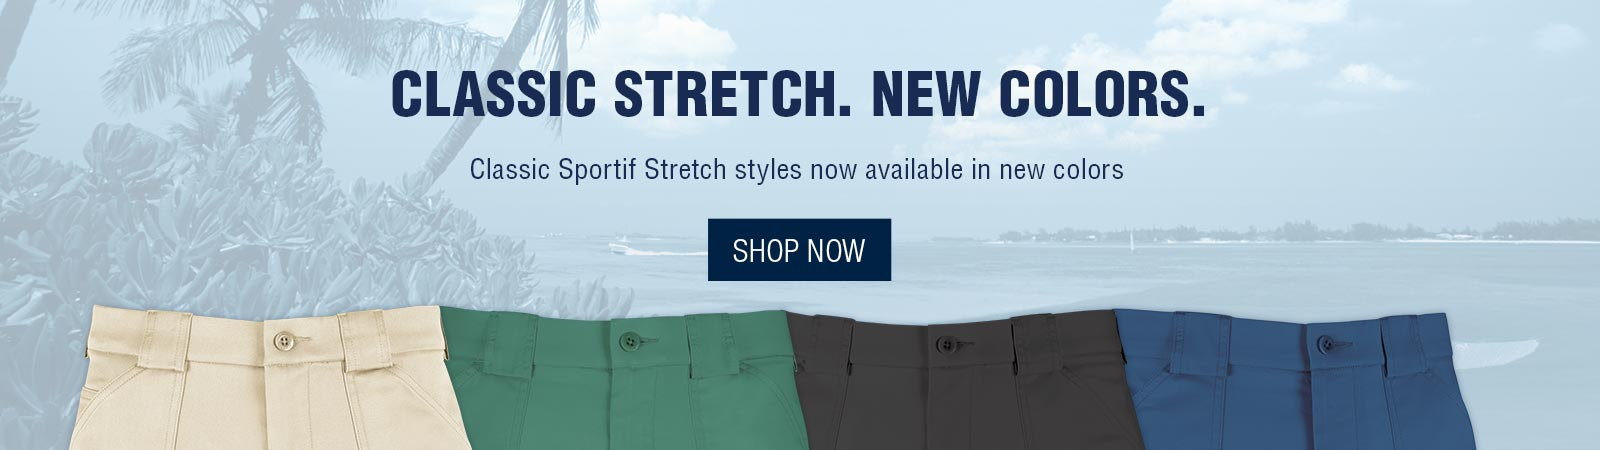 Shop Classic Stretch Styles